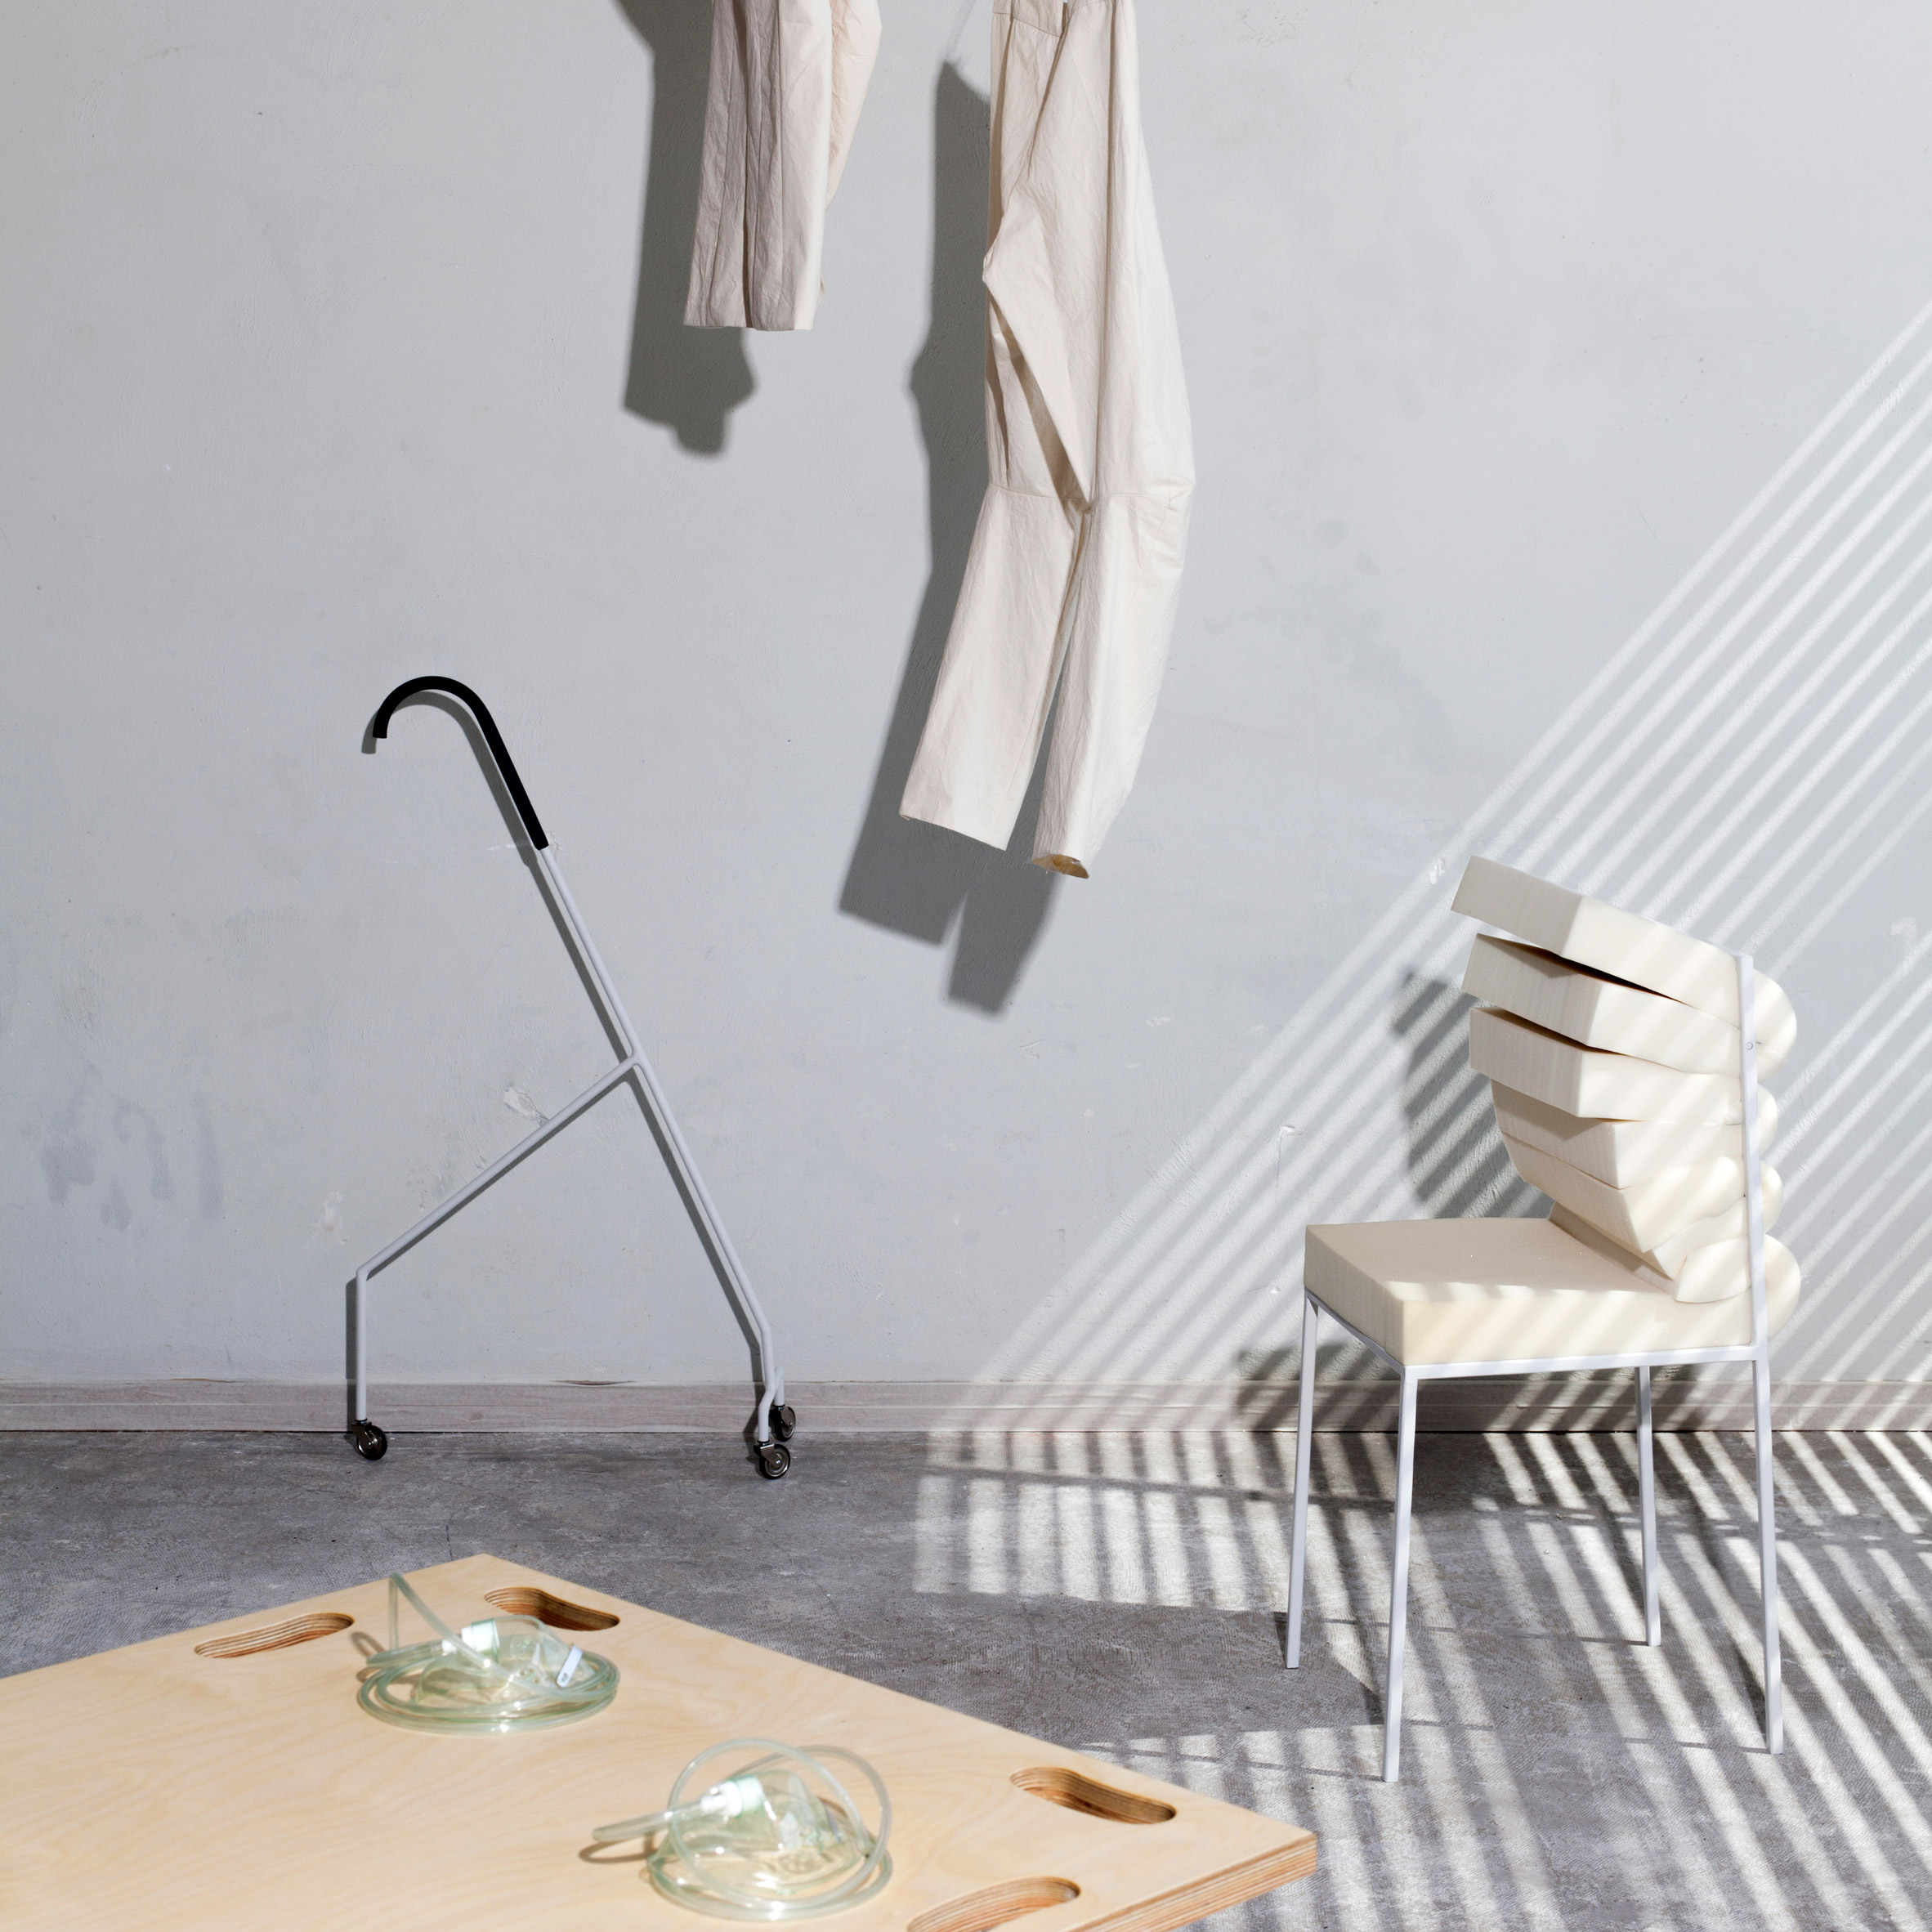 Dorota Gazy Creates Clothing And Furniture For A Lazy Lifestyle